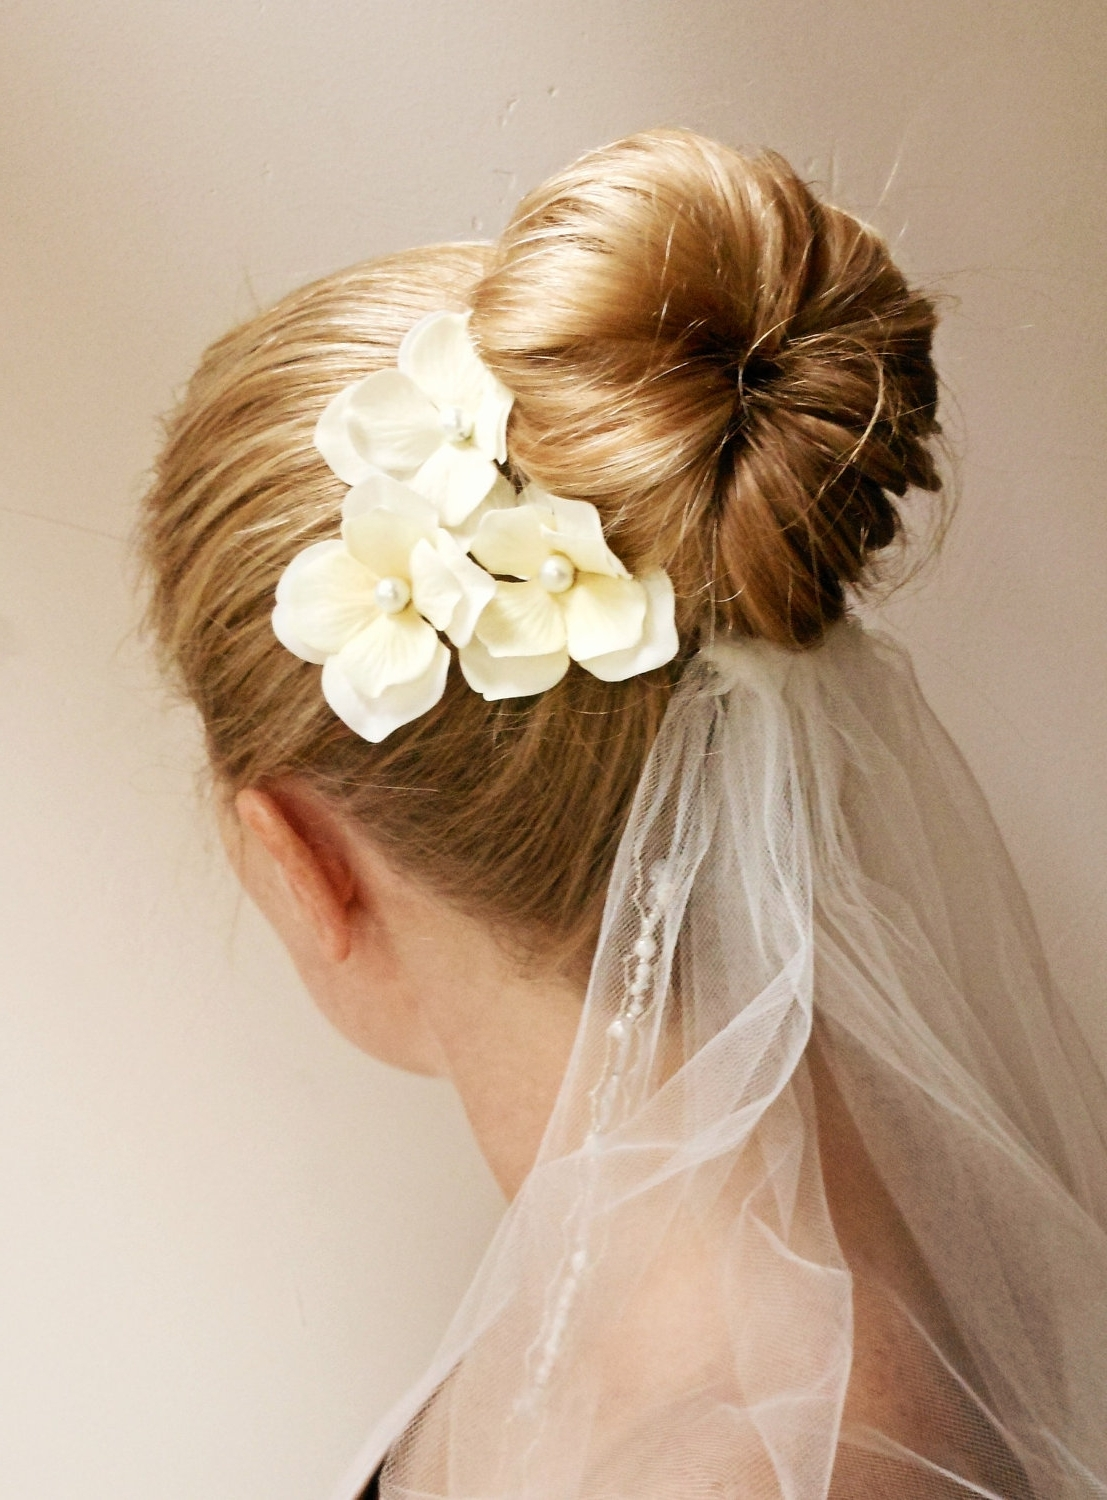 Wedding Hairstyles Ideas: Find The Pretty Look Through Long Hair Within Updo Hairstyles For Wedding (View 14 of 15)